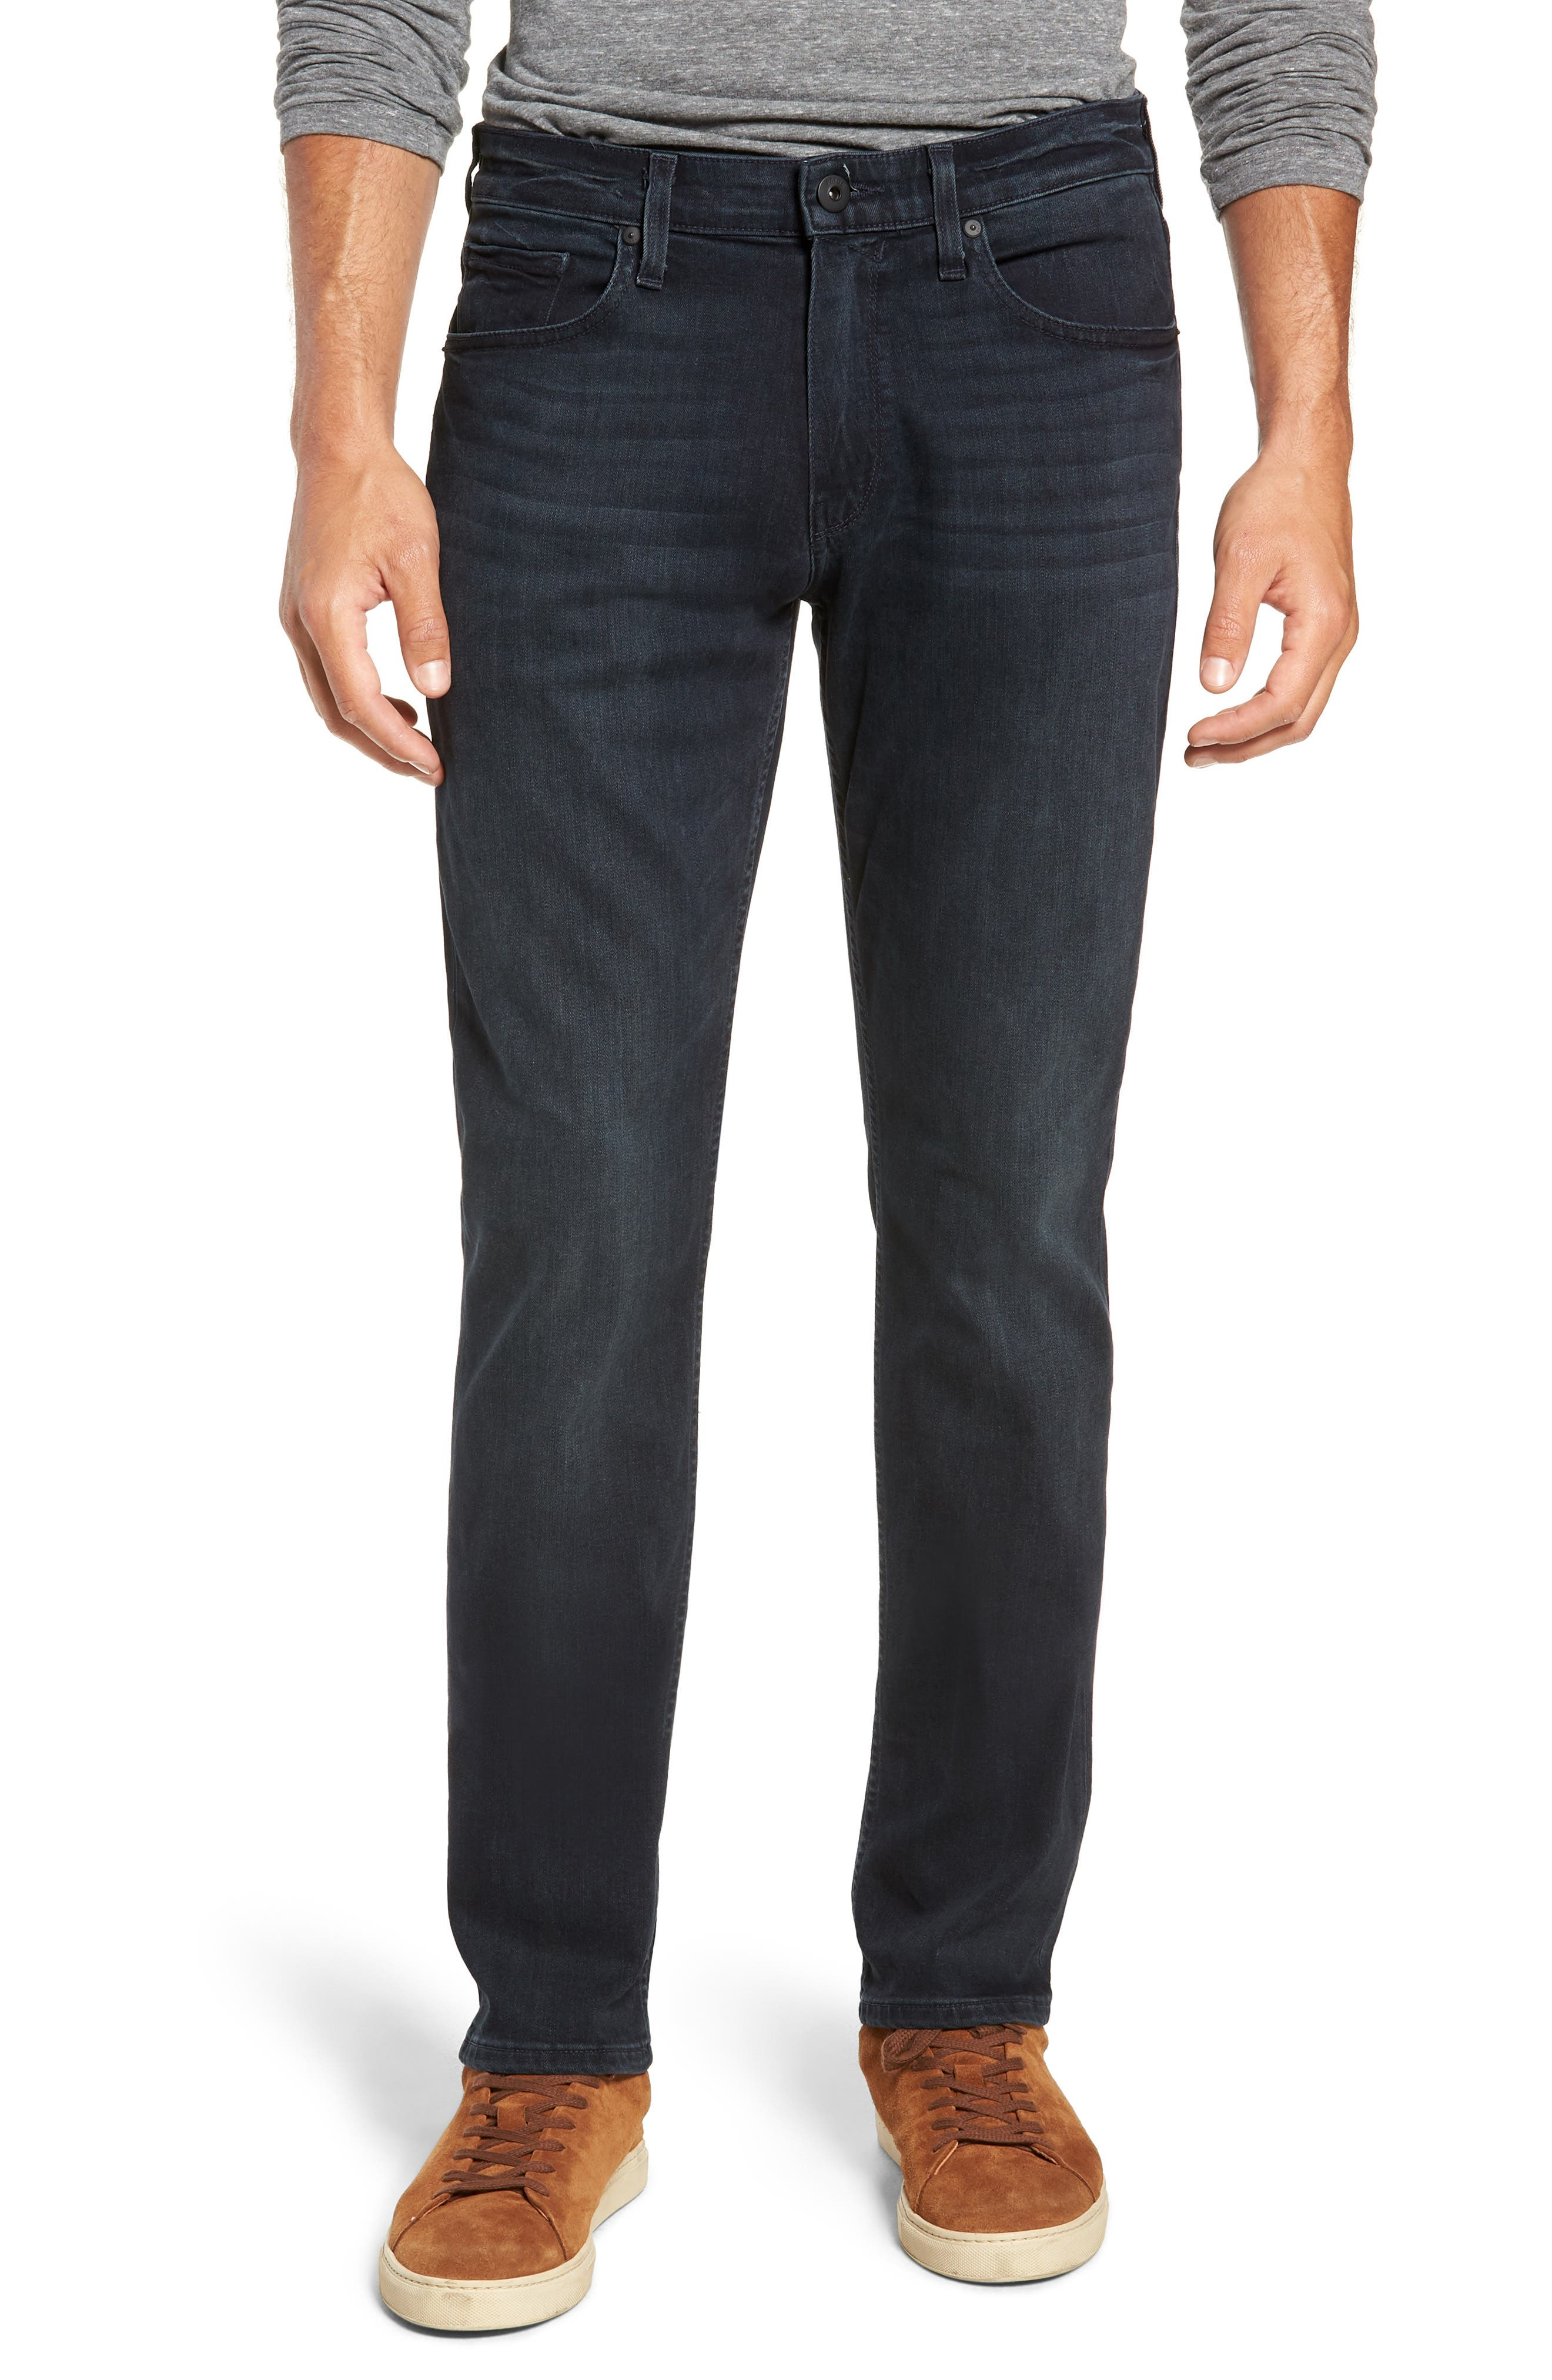 Transcend - Federal Slim Fit Straight Leg Jeans,                         Main,                         color, BECKETT